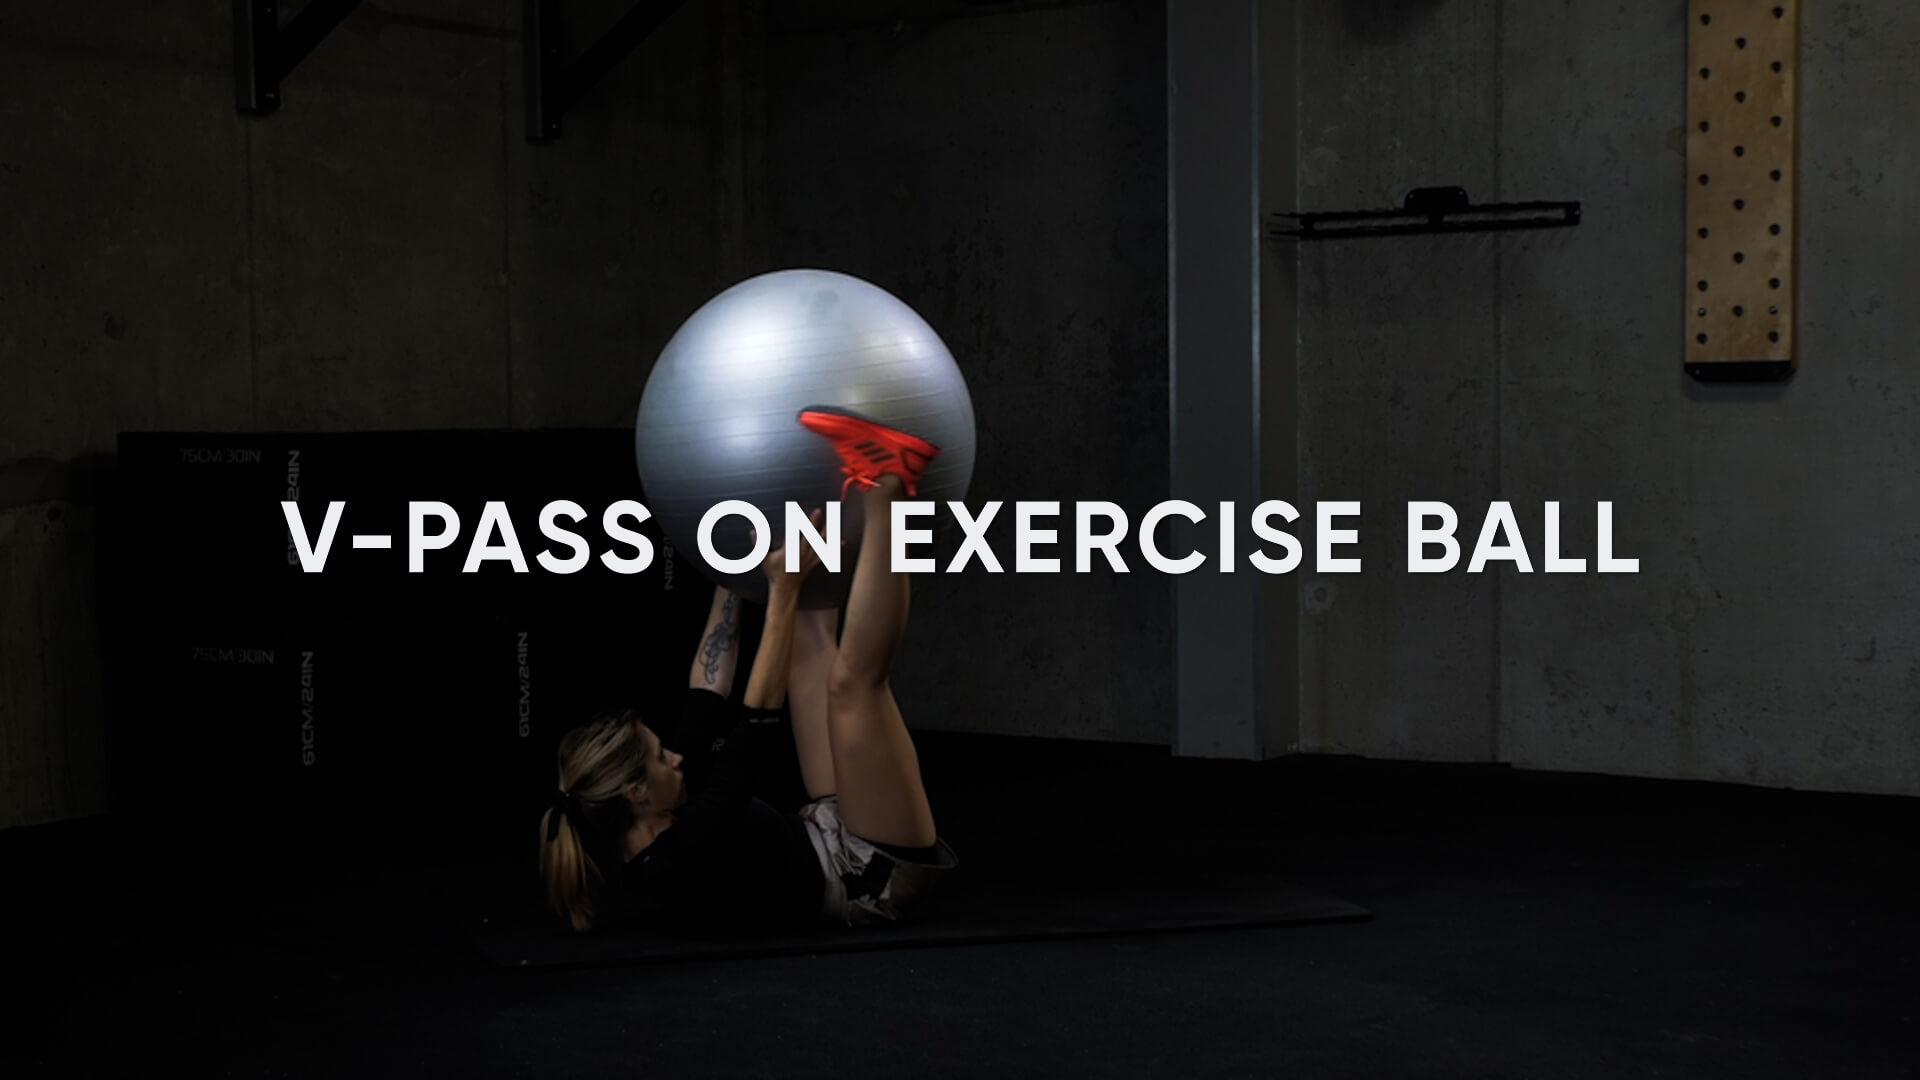 V-Pass with Exercise Ball